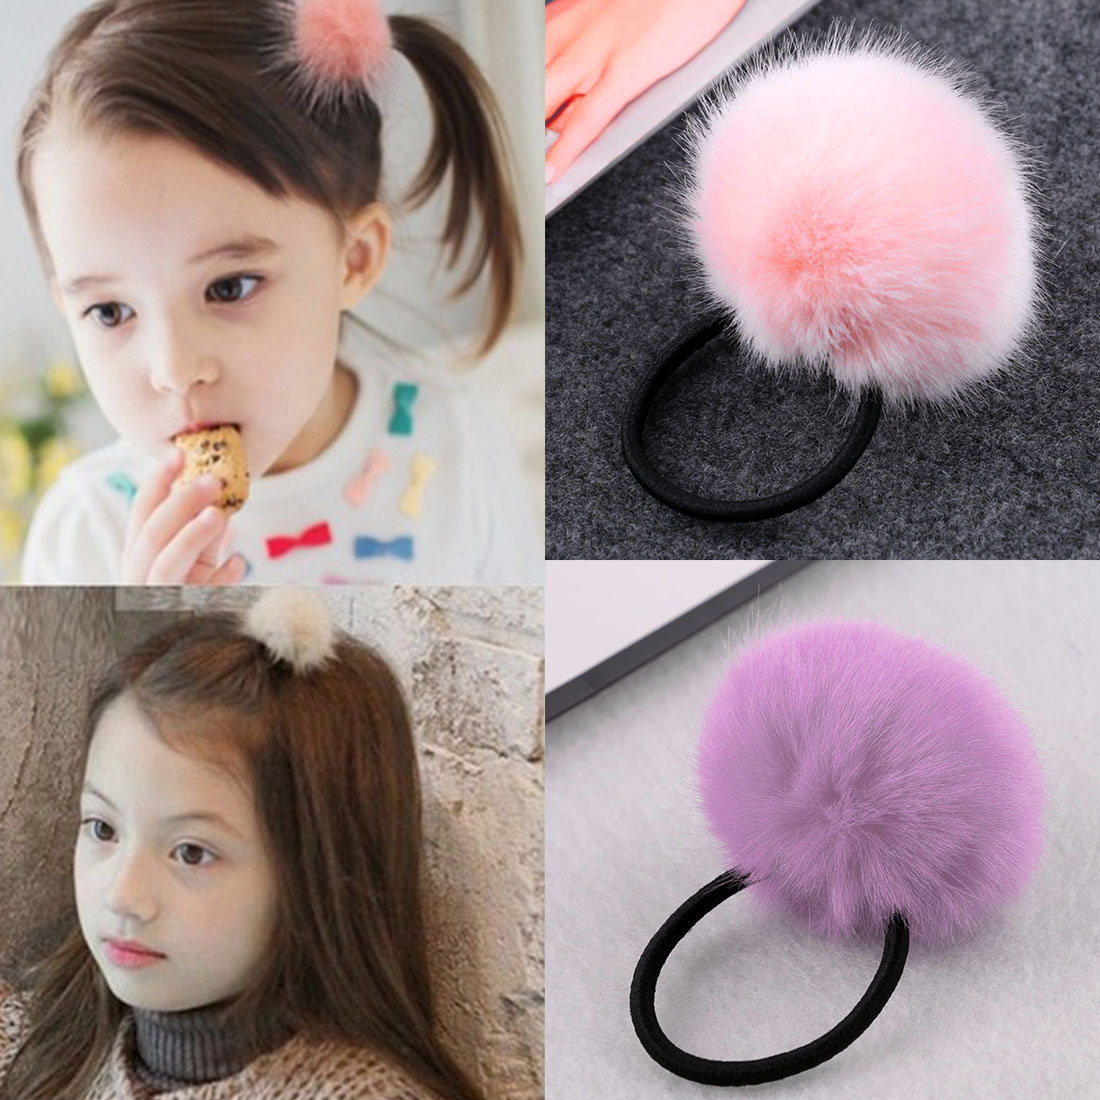 Korean Artificial Marten Ball hair Elastic Band Ponytail Holder Girl Kids Scrunchy Hair Accessories Gift Gum for Hair m mism korean artificial marten ball hair elastic band ponytail holder girl kids scrunchy hair accessories gift gum for hair